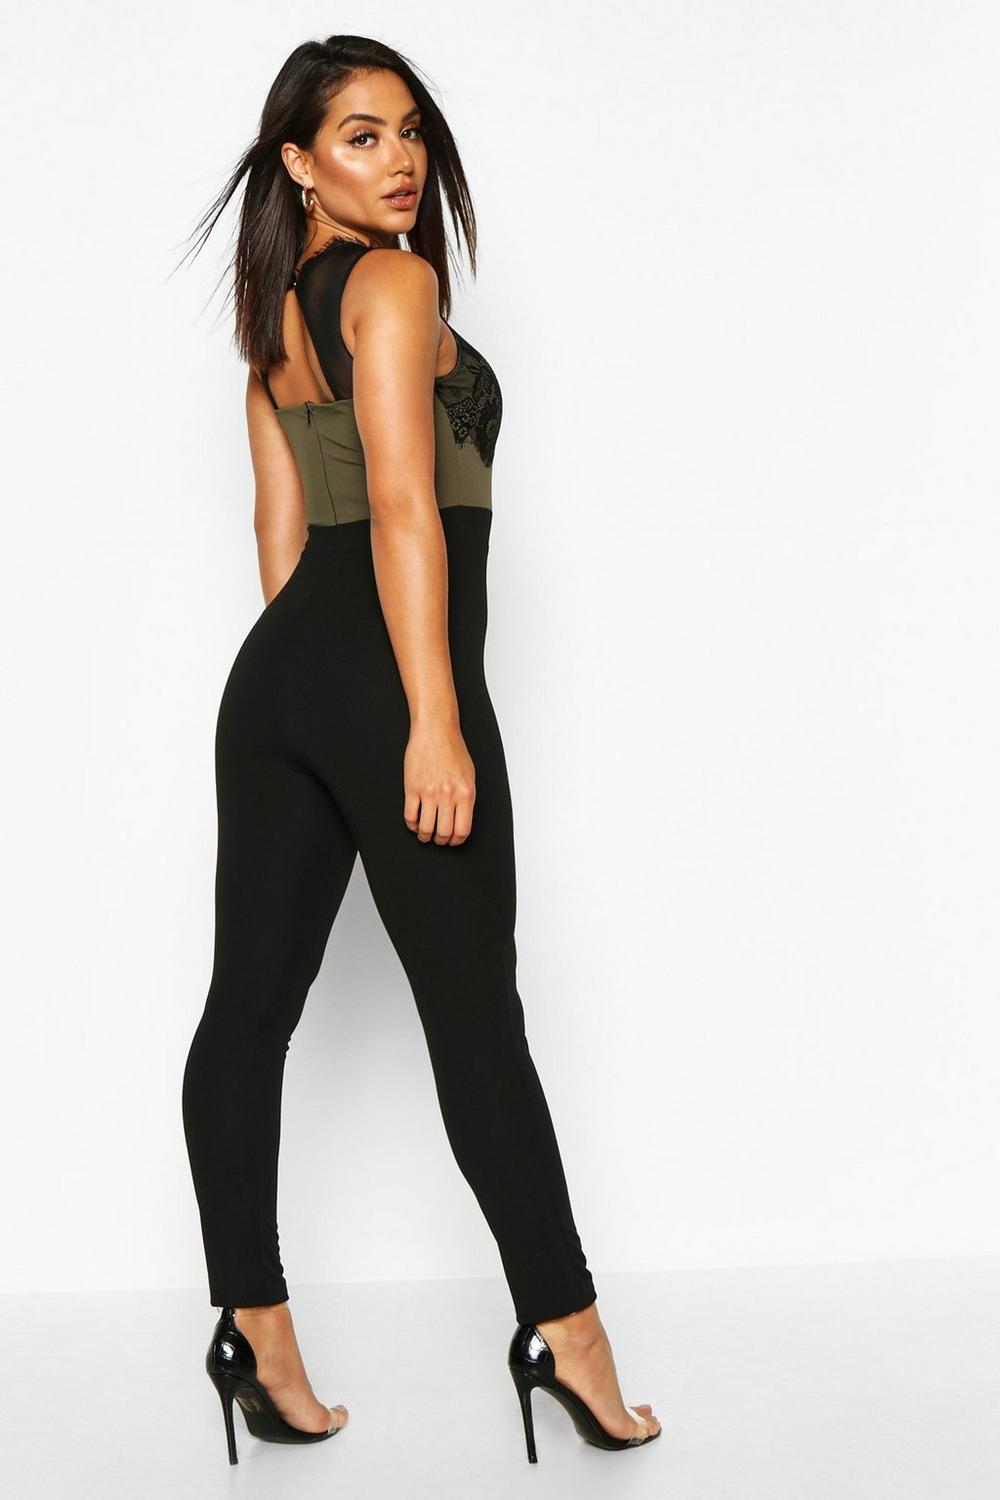 Shop rompers and jumpsuits for women in all colors including black and white. Business and casual styles that are cheap in price, high in fashion. Rompers Jumpsuits Sale Rompers and Jumpsuits Activewear Jealous Of Her Lace Up Jumpsuit - Wine. $ USD. NEW. NEW. QUICK VIEW. Do You Feel Me Jumpsuit - Brown. $ USD. QUICK VIEW.